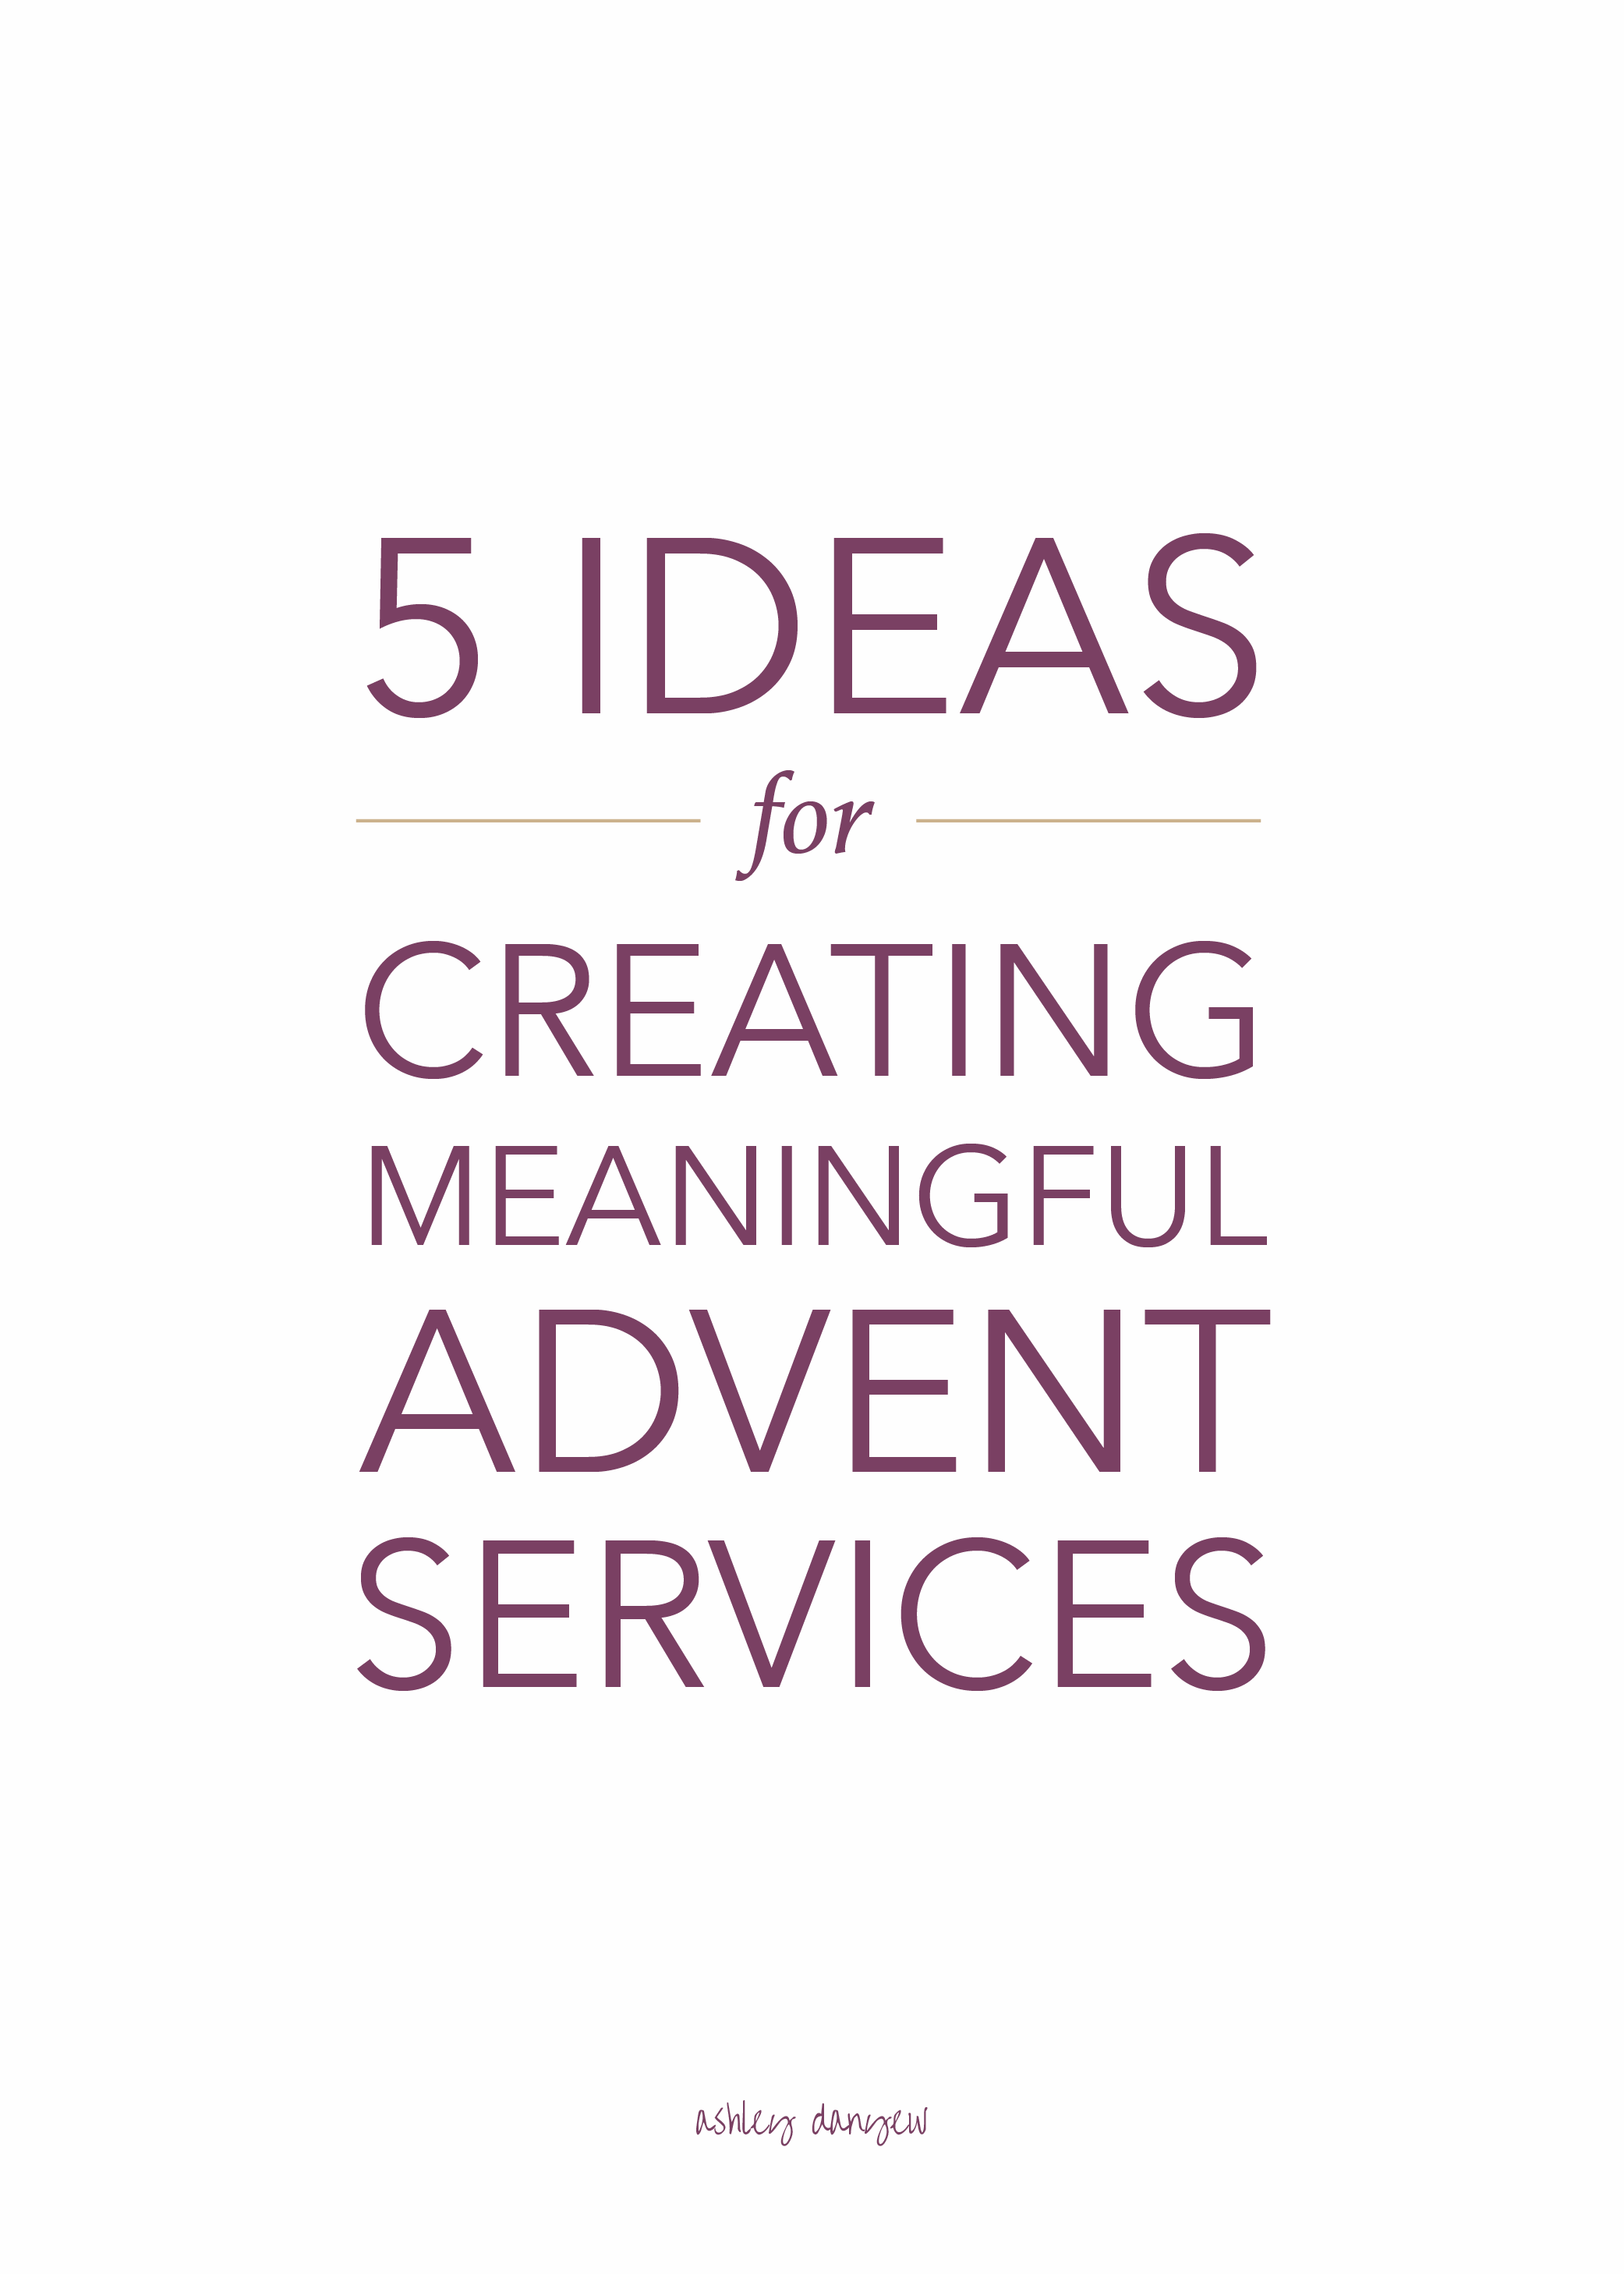 Copy of 5 Ideas for Creating Meaningful Advent Services